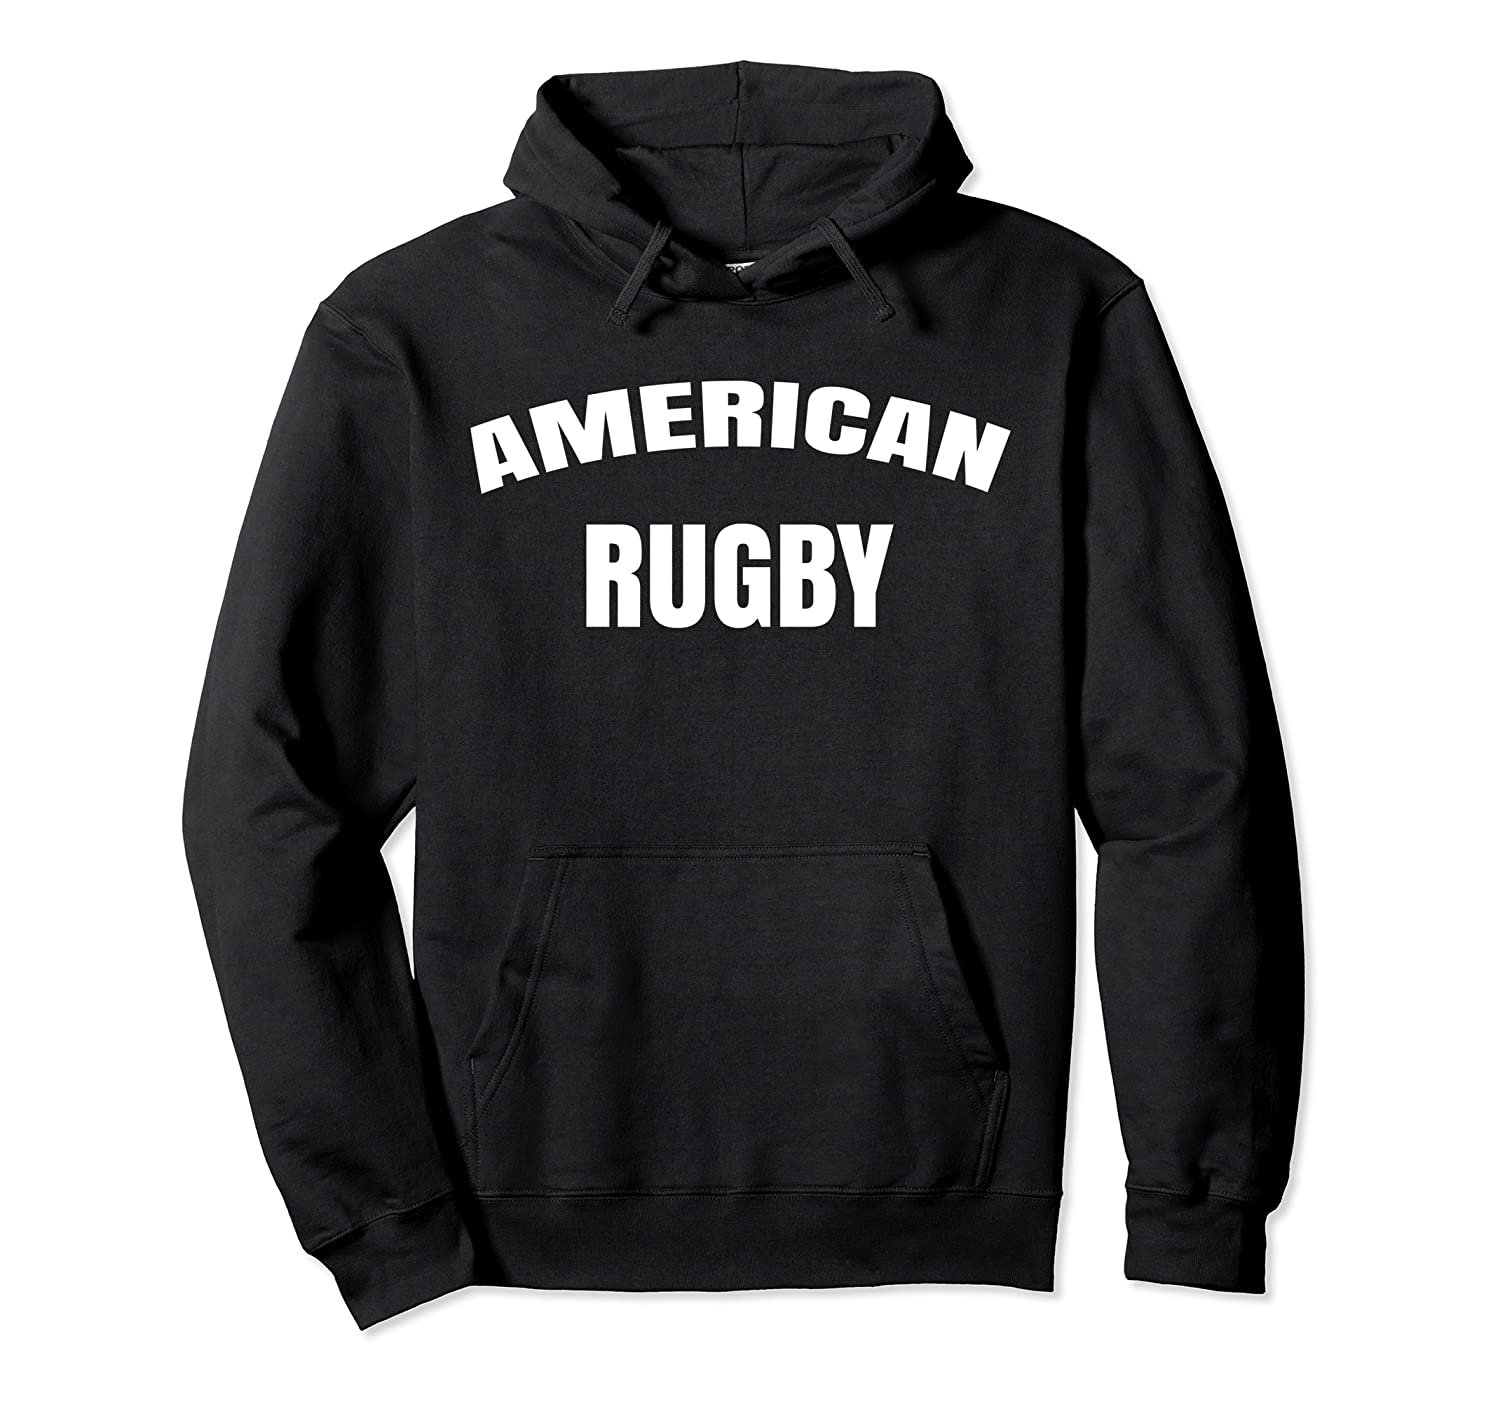 American Rugby T Shirt With Saying American Rugby T-shirt Unisex Pullover Hoodie